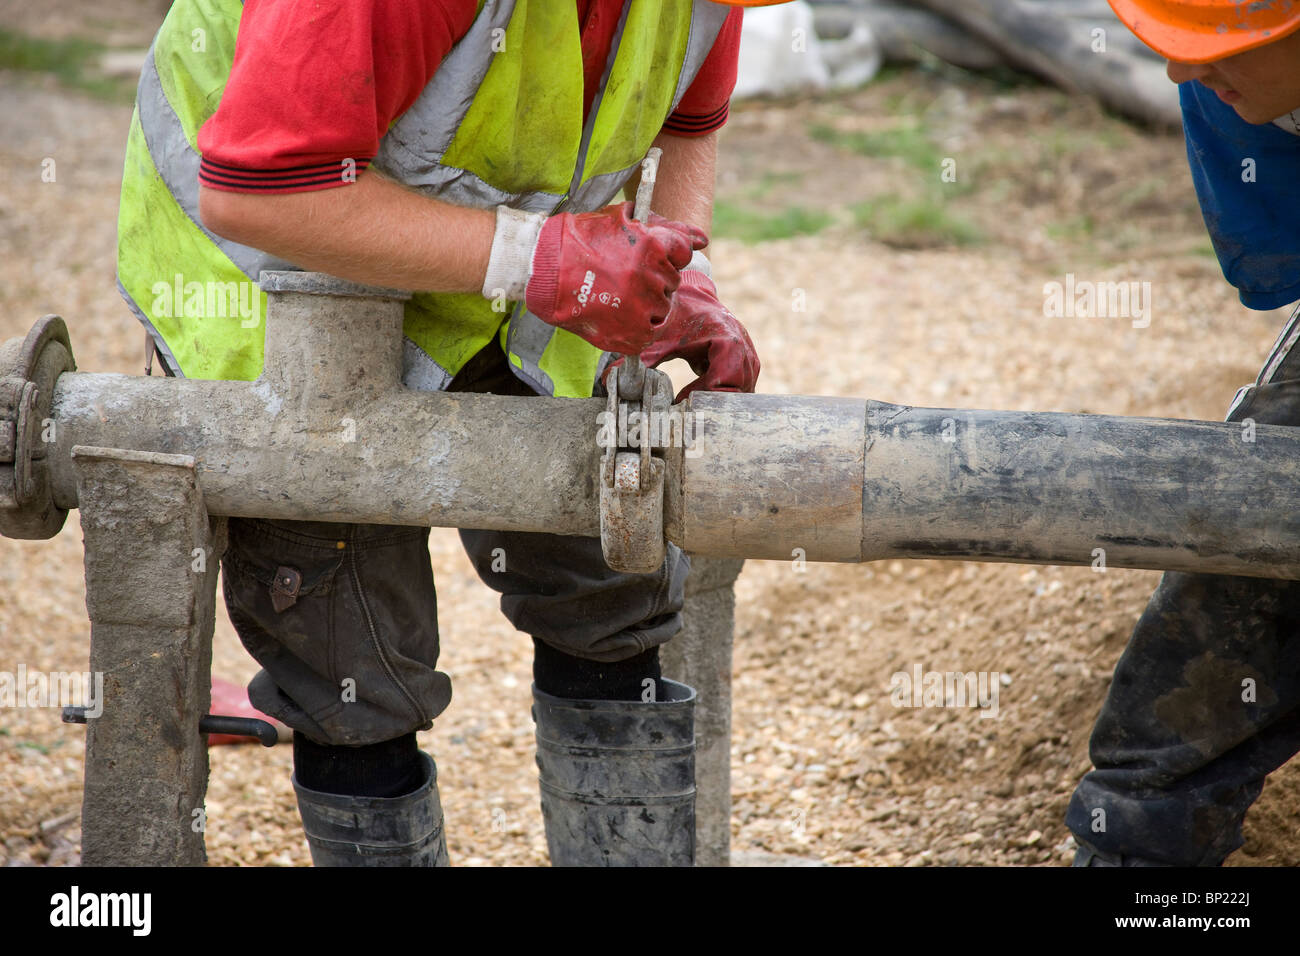 Fitting a hose connection to join lengths of hose together ready to pump concrete. - Stock Image